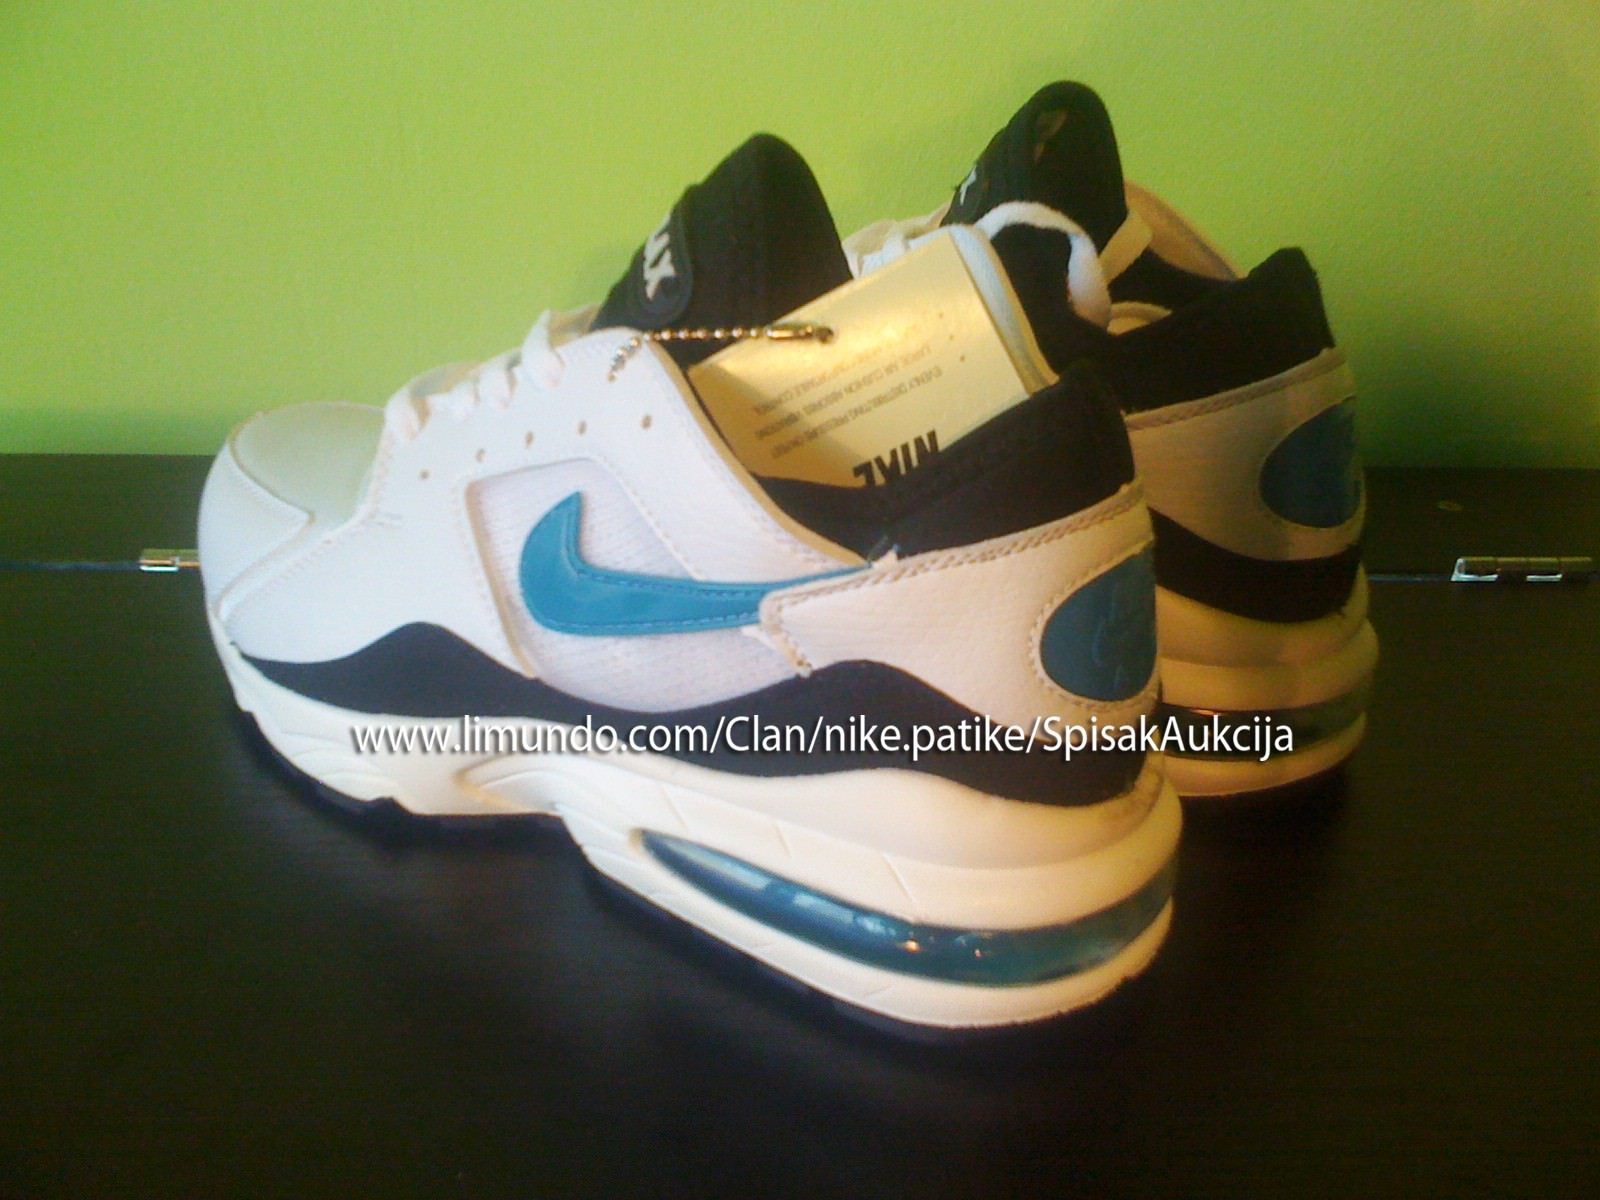 Nike Patike Sweden Patike Novo Nike Air Max 93 Original D5216 70697